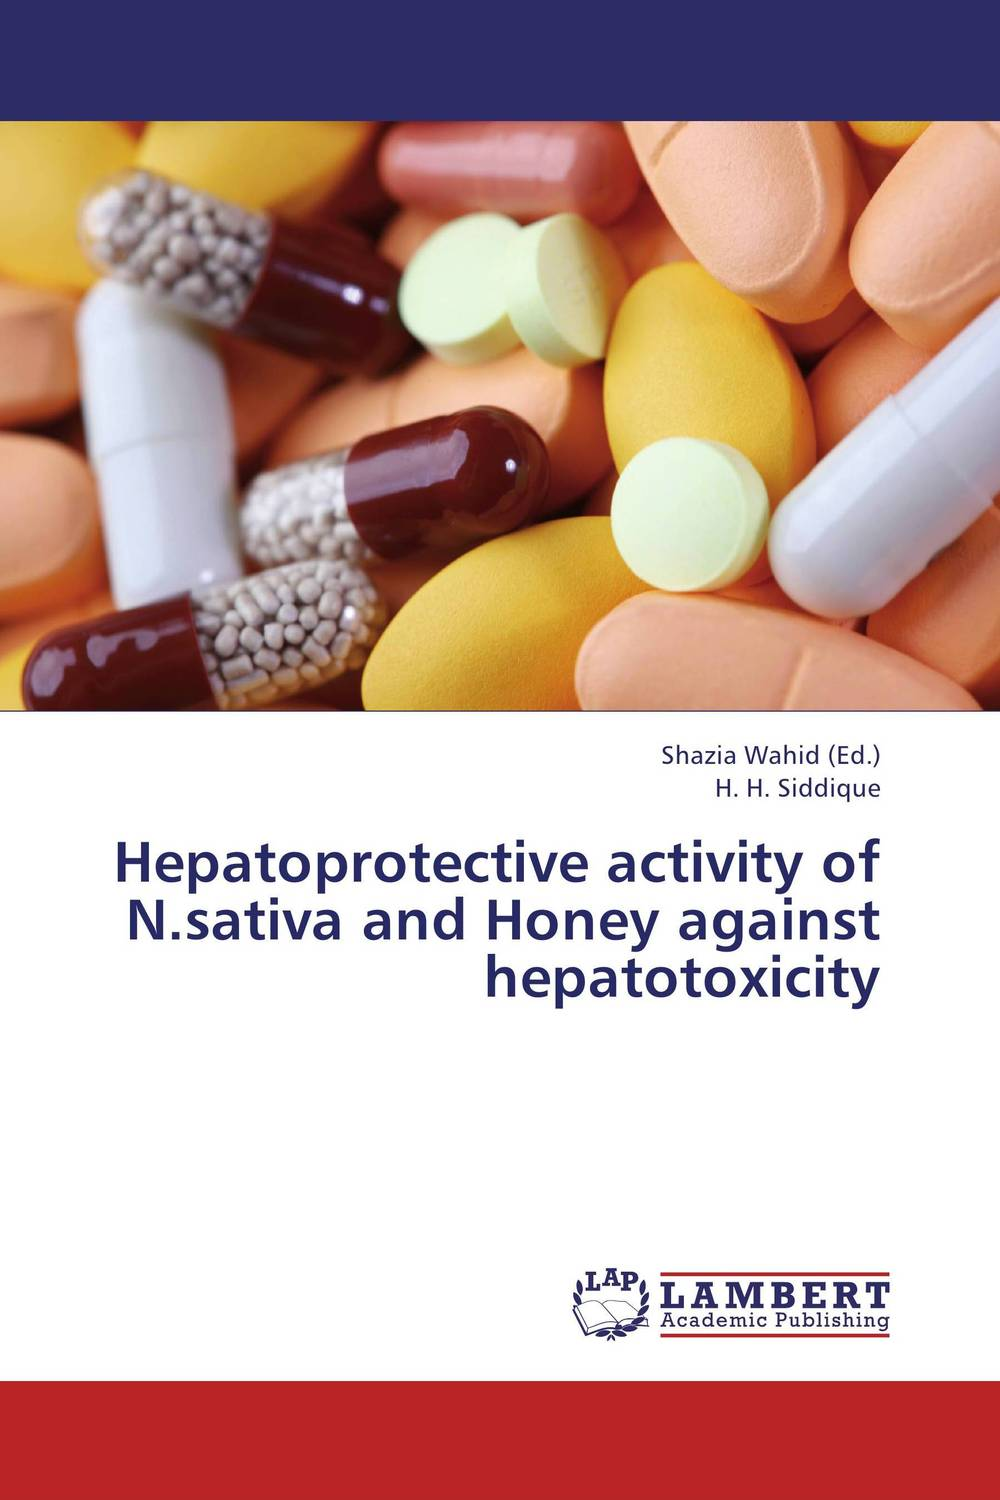 купить Hepatoprotective activity of N.sativa and Honey against hepatotoxicity недорого